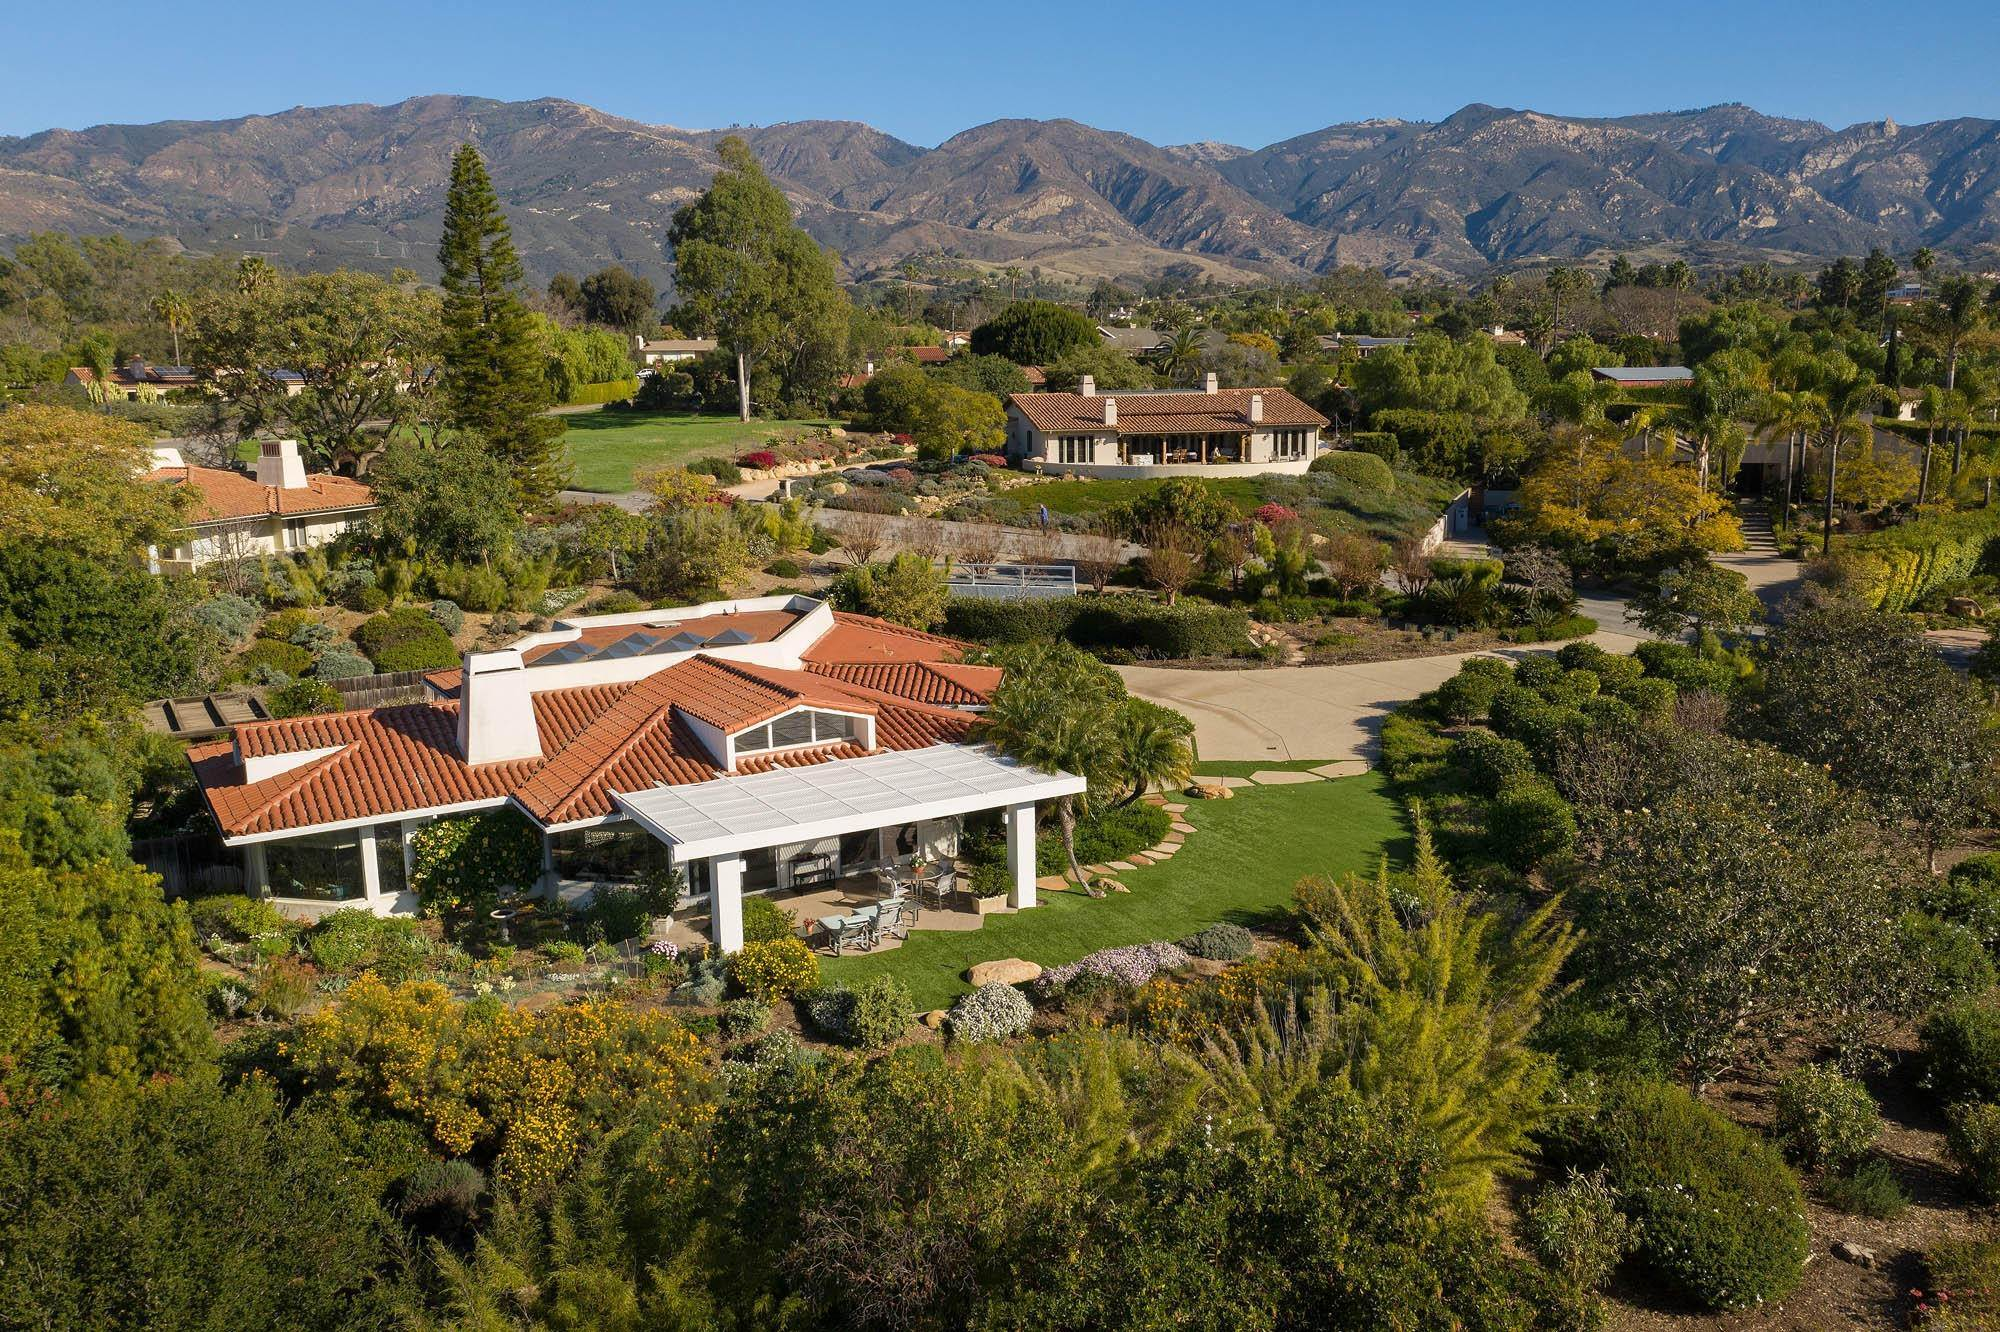 Estate for Sale at 957 Via Los Padres Santa Barbara, California 93111 United States